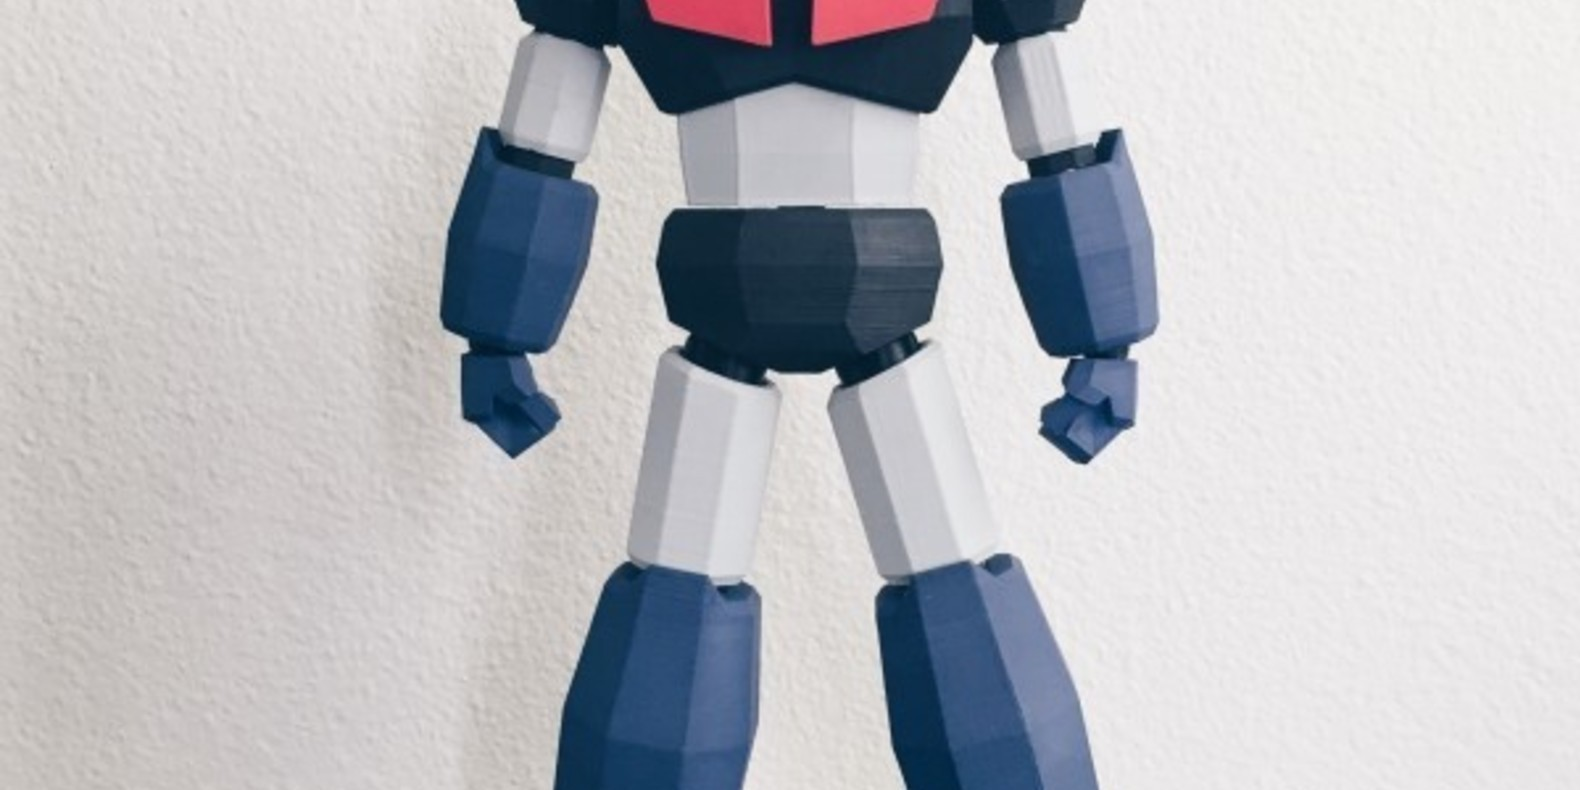 Low Poly Mazinger Z printed in 3D